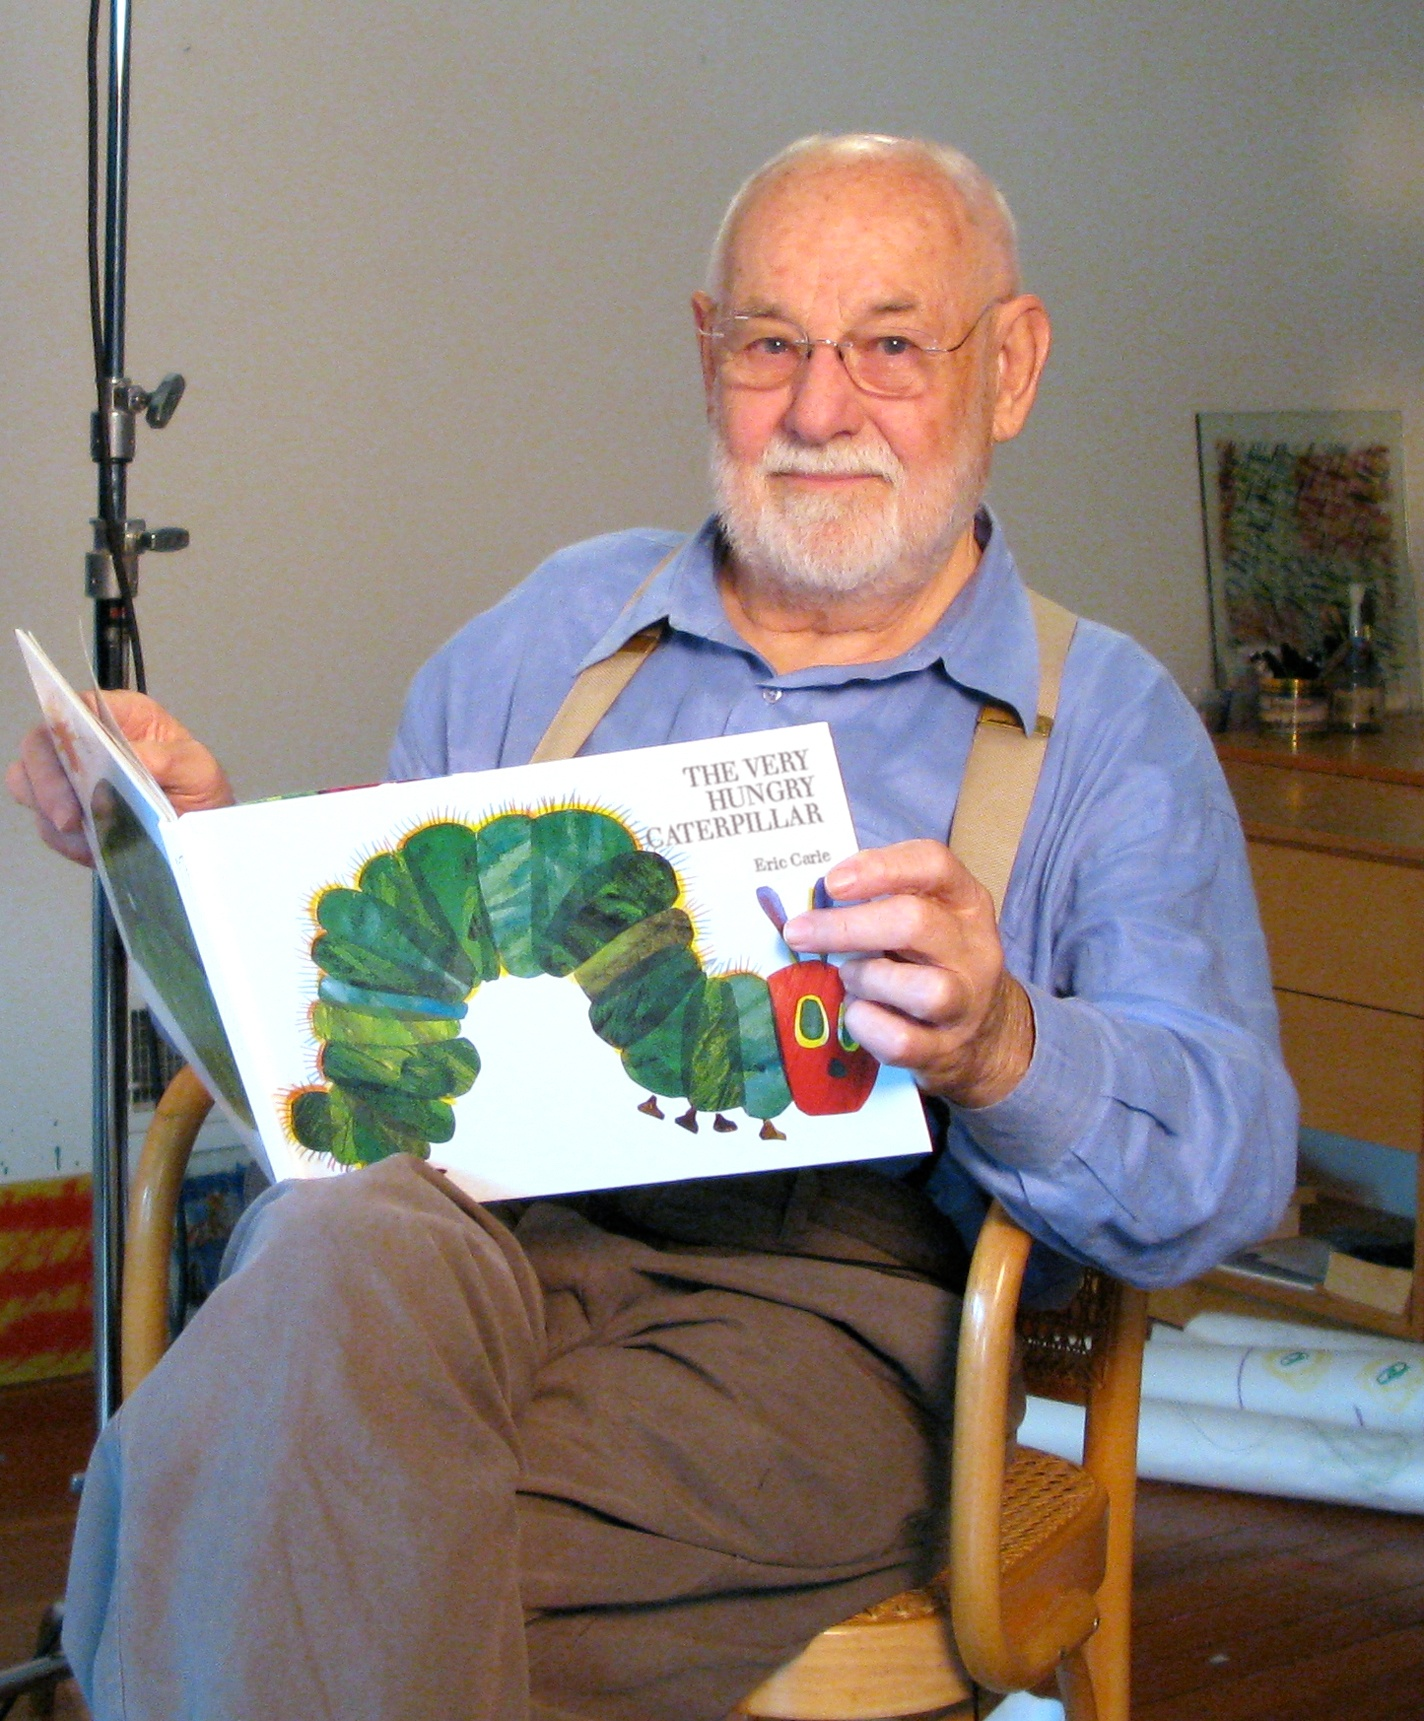 A Brief Introduction to Eric Carle